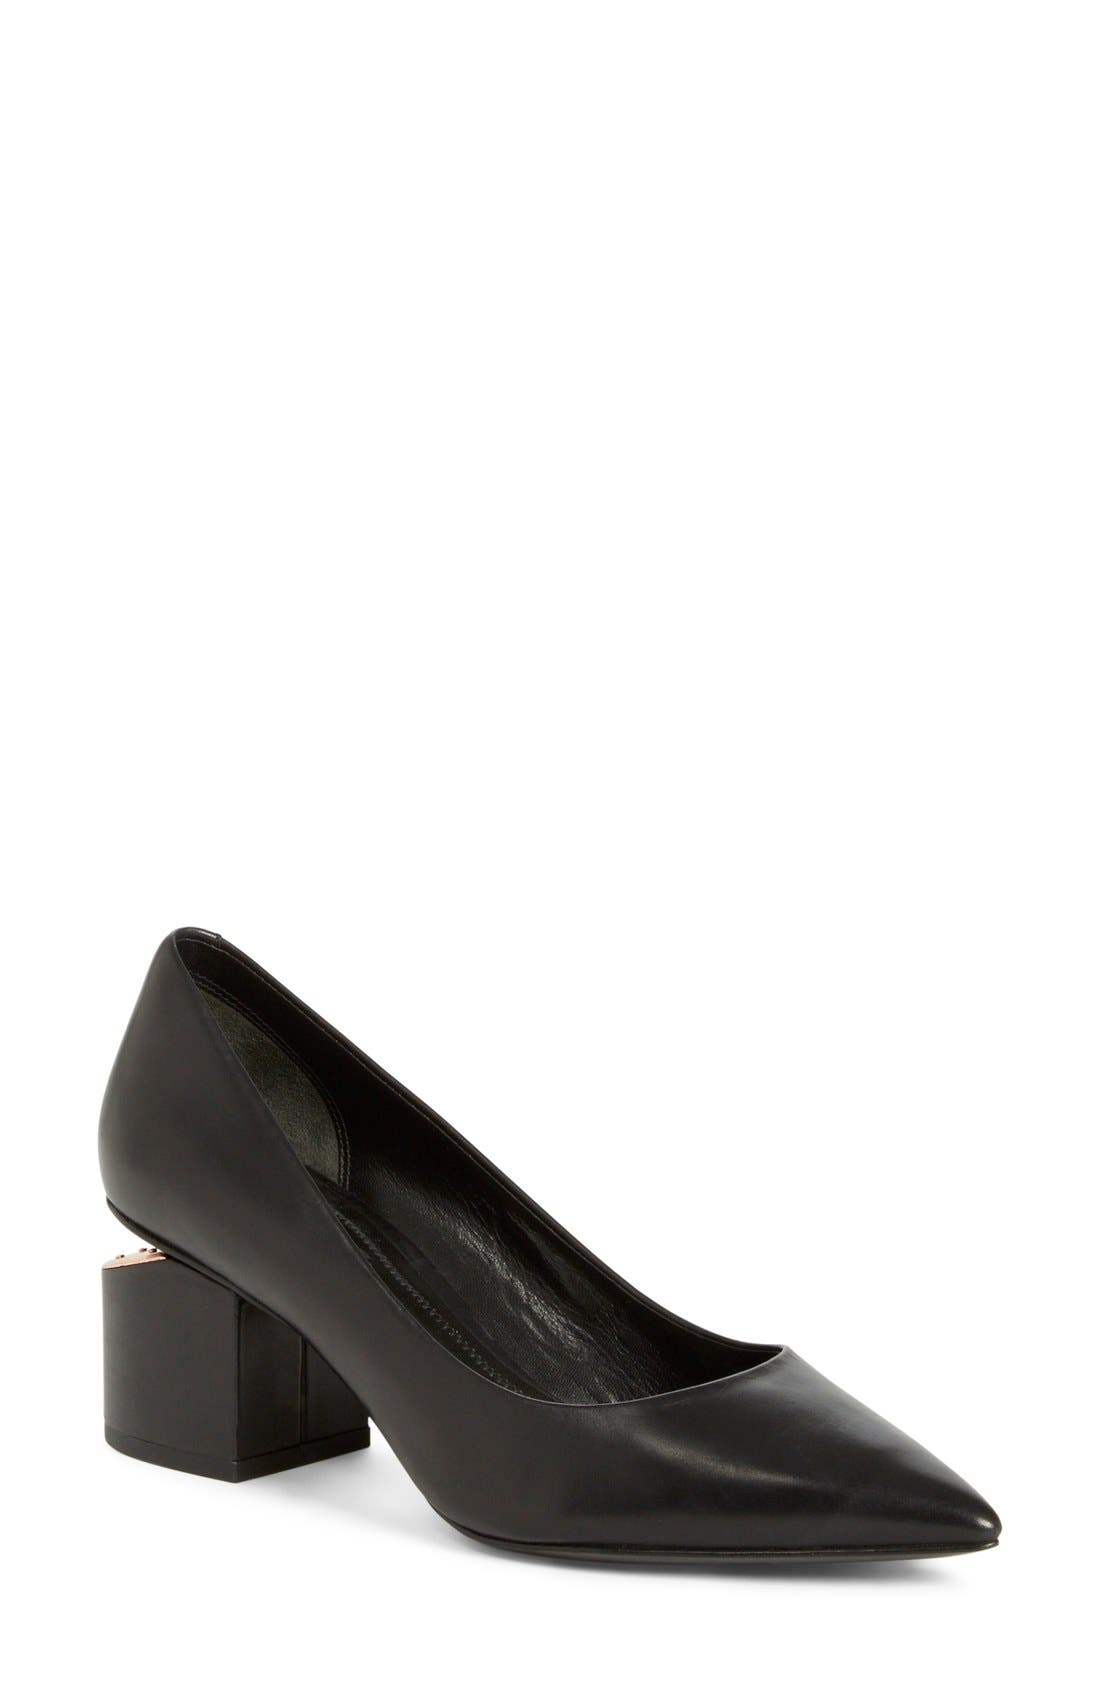 Alternate Image 1 Selected - Alexander Wang 'Simona' Block Heel Pump (Women)